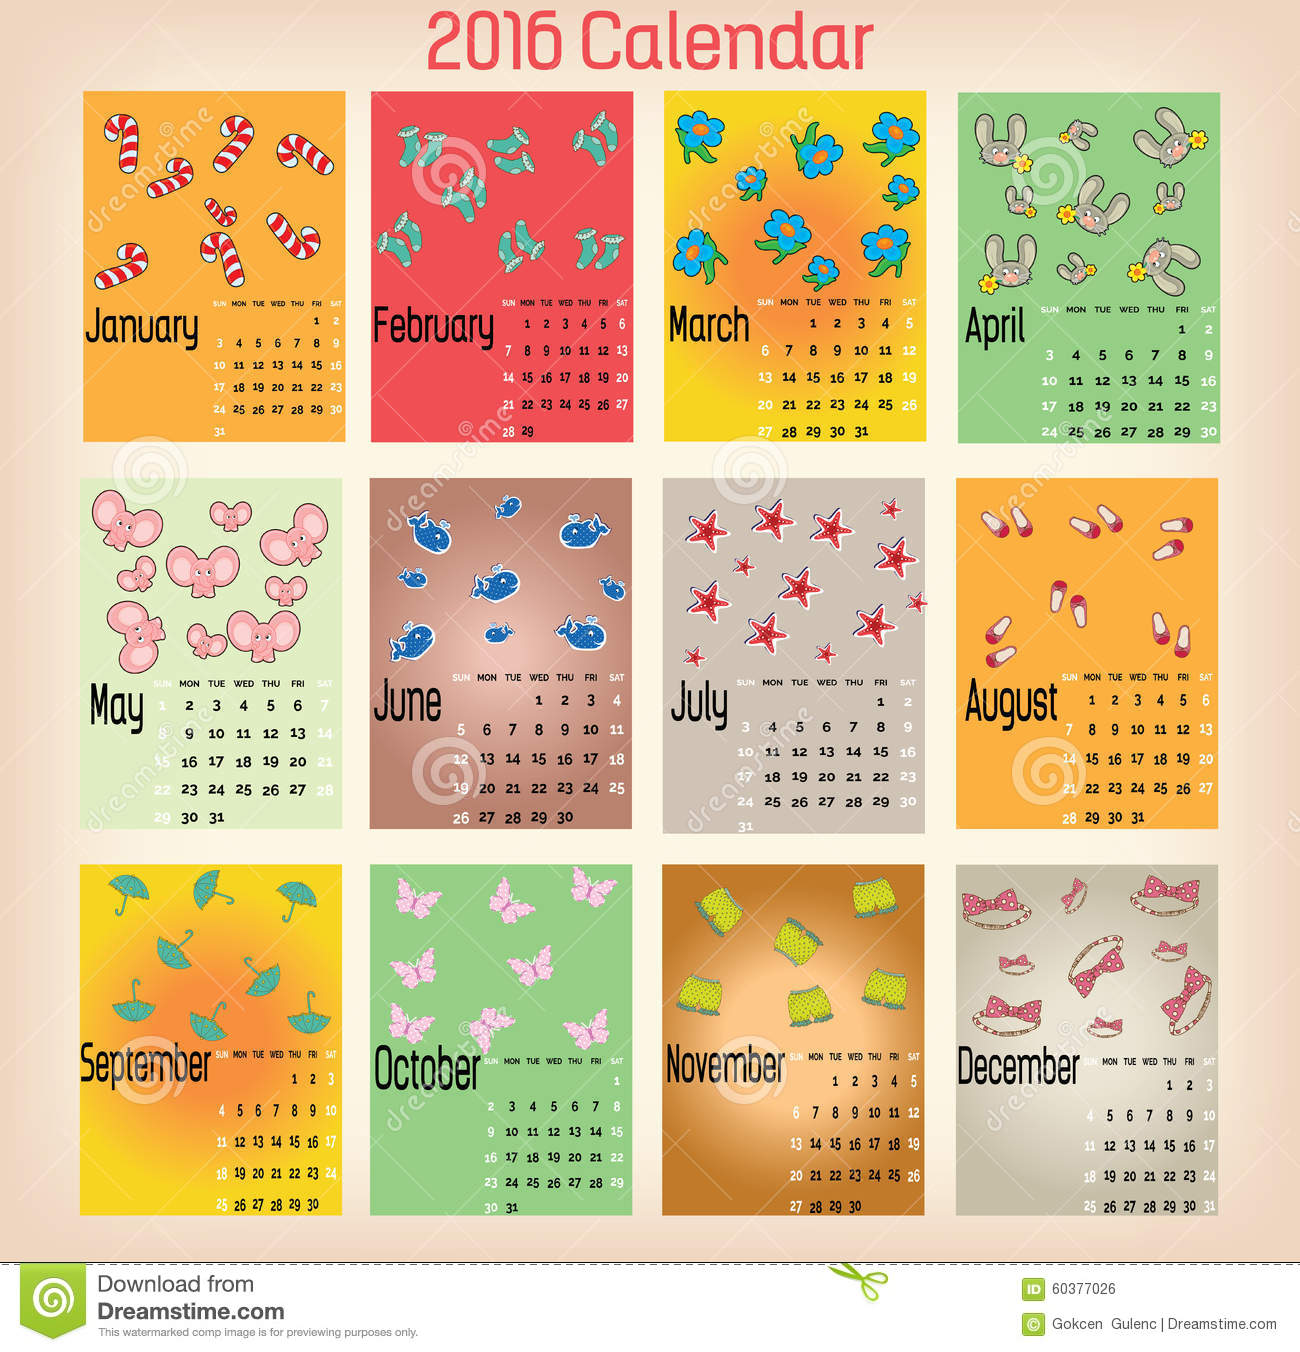 Calendar Design Date : Colorful calendar stock vector illustration of date